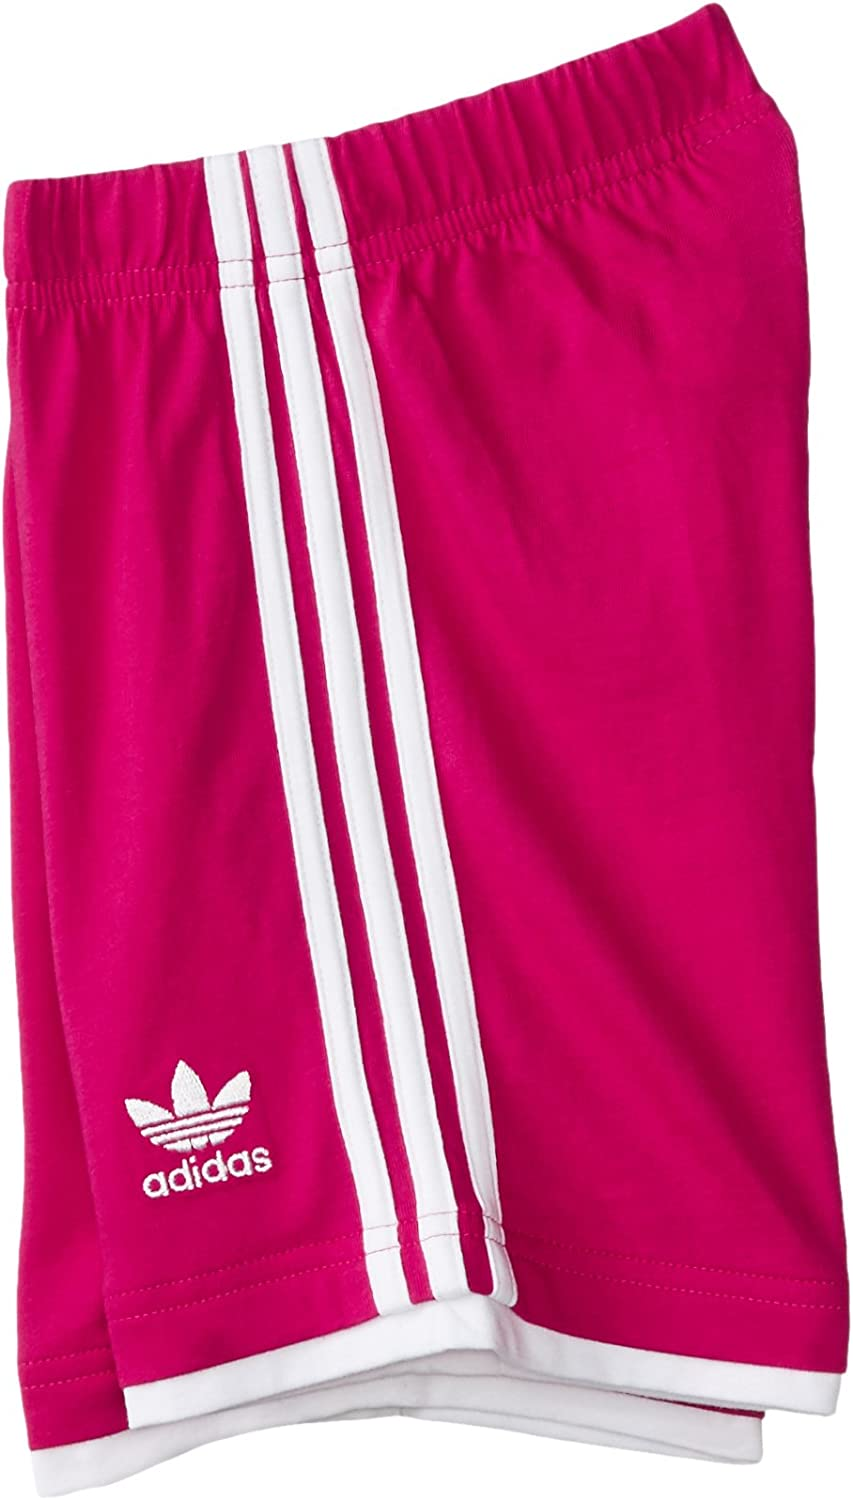 adidas Originals Trefoil Tee and Shorts Set